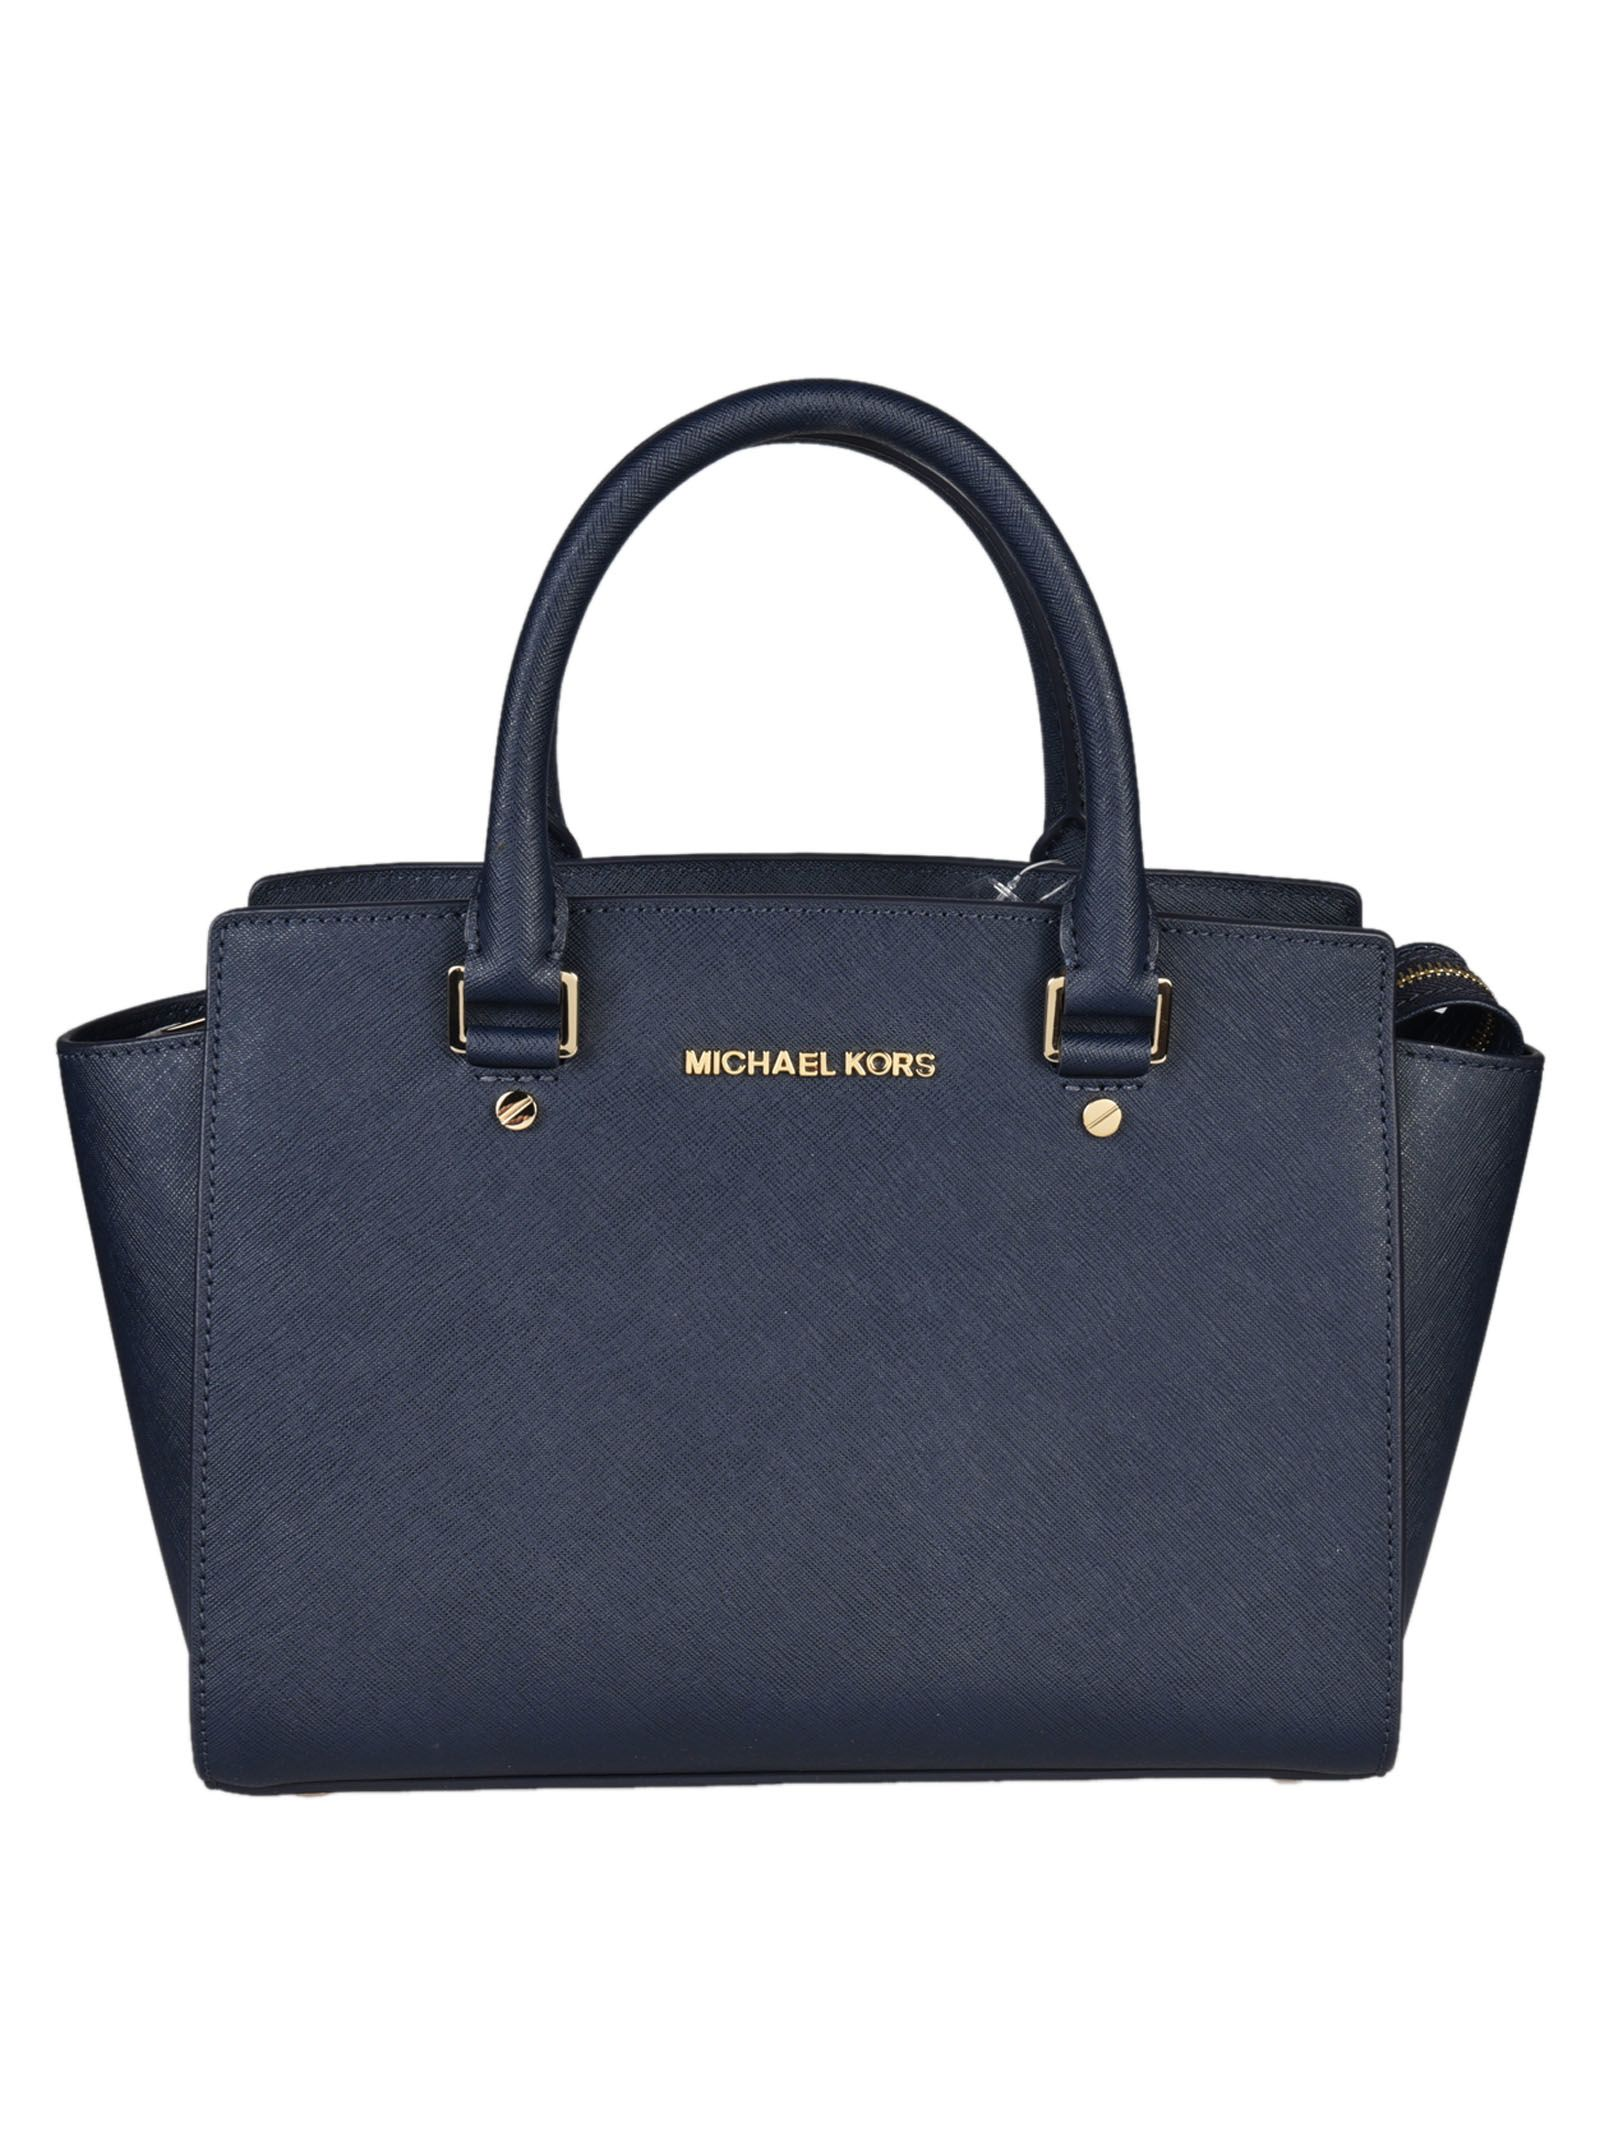 michael kors michael kors selma tote admiral women 39 s totes italist. Black Bedroom Furniture Sets. Home Design Ideas